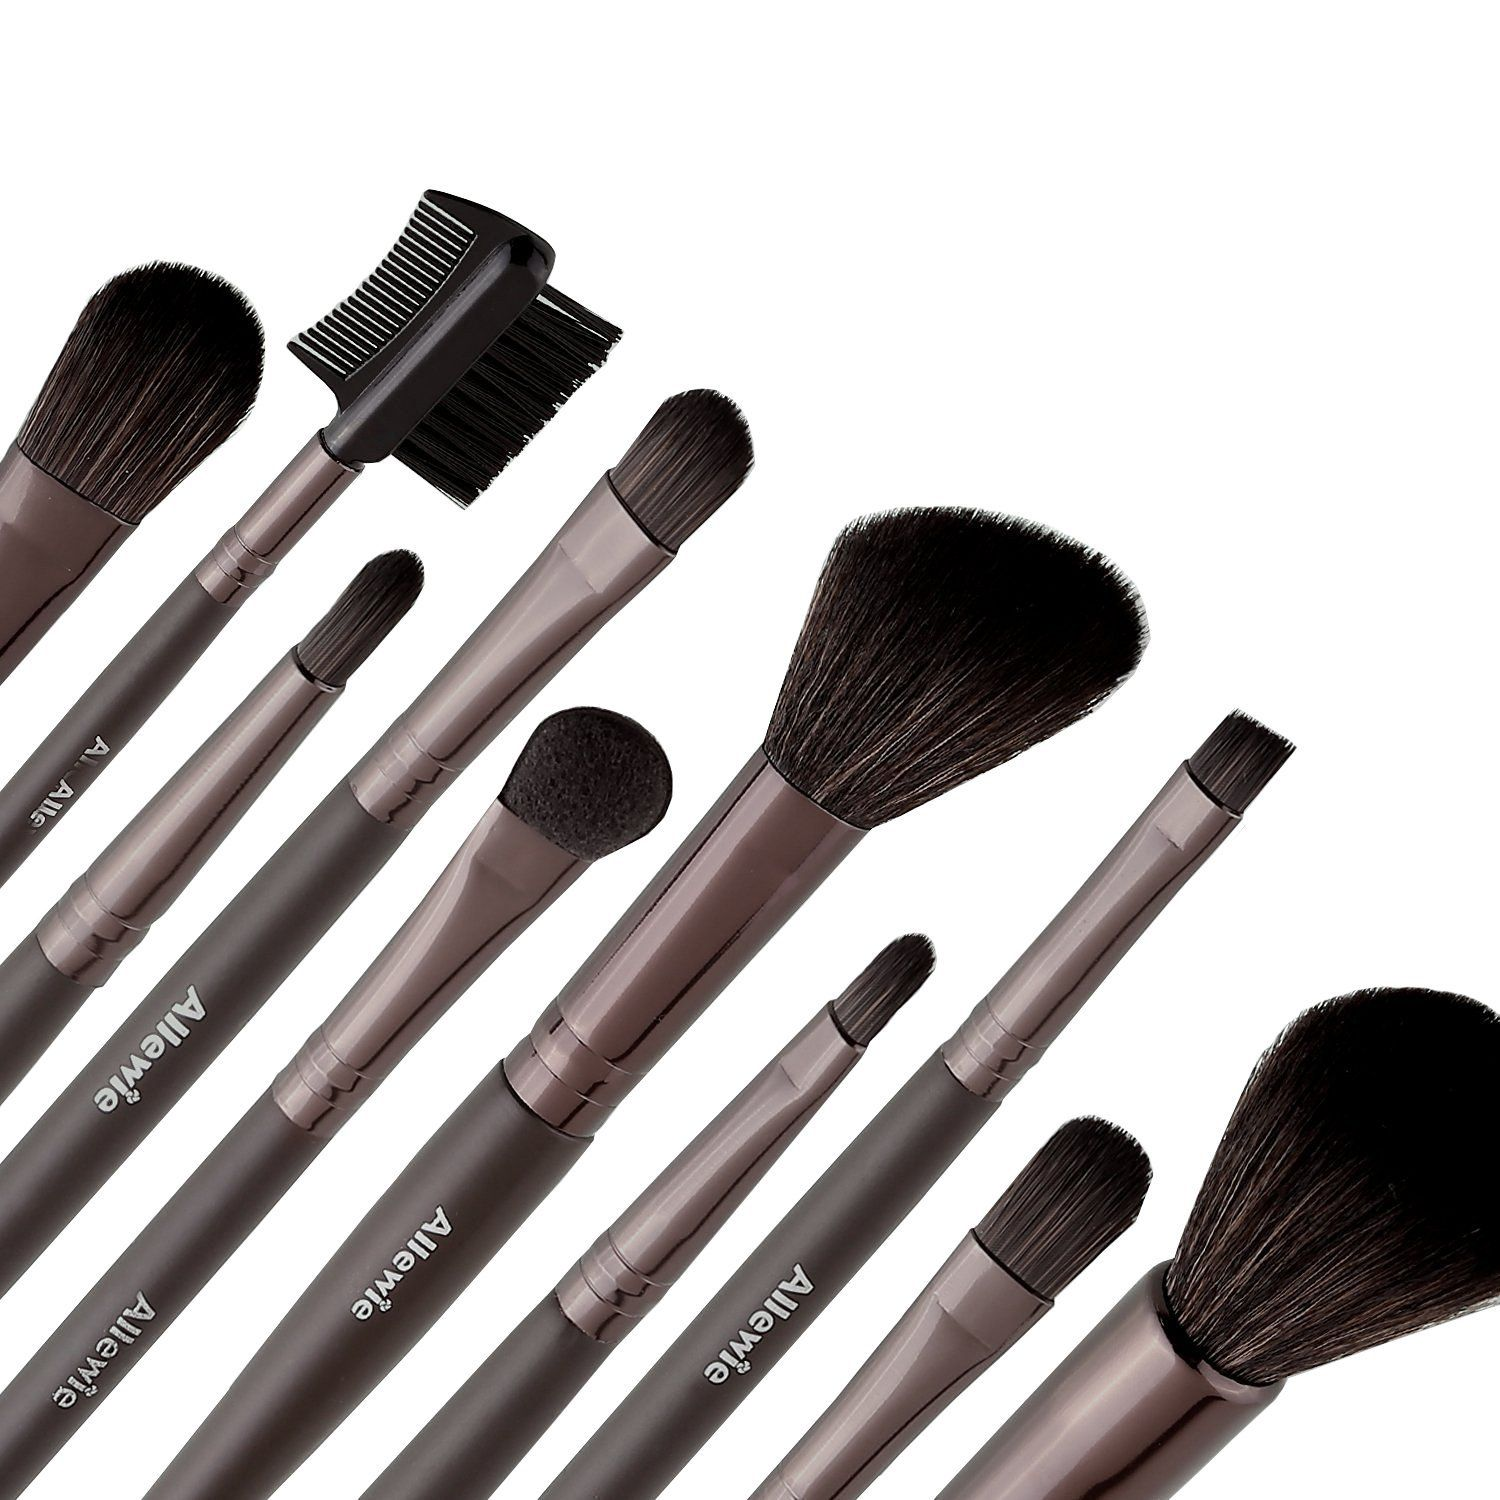 Black Makeup Brush Bag in 2020 Makeup brush bag, Makeup